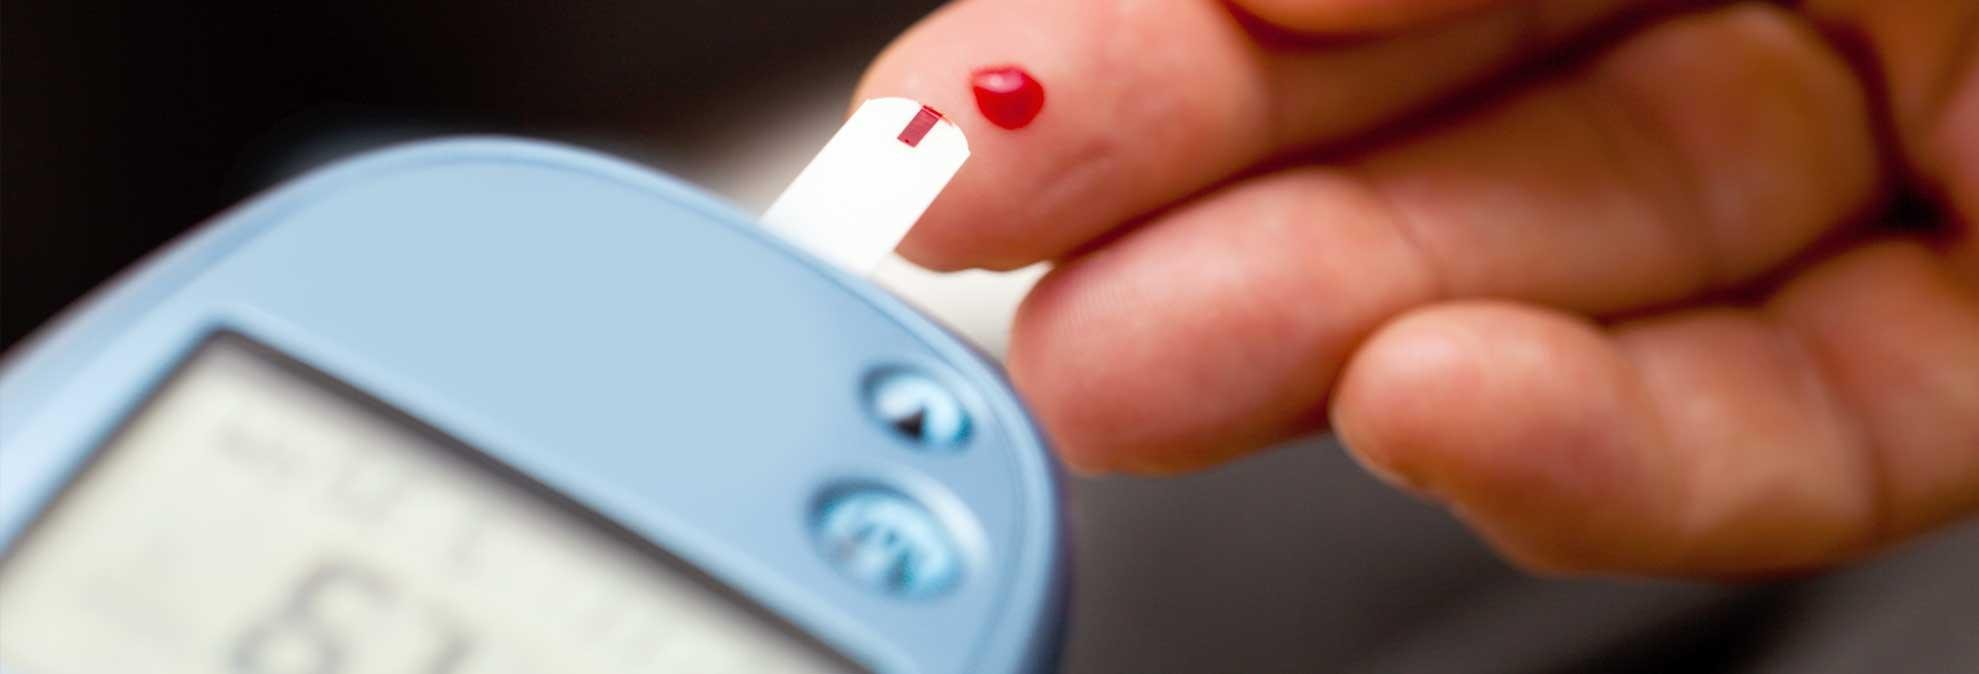 What Does A Blood Glucose Meter Do?